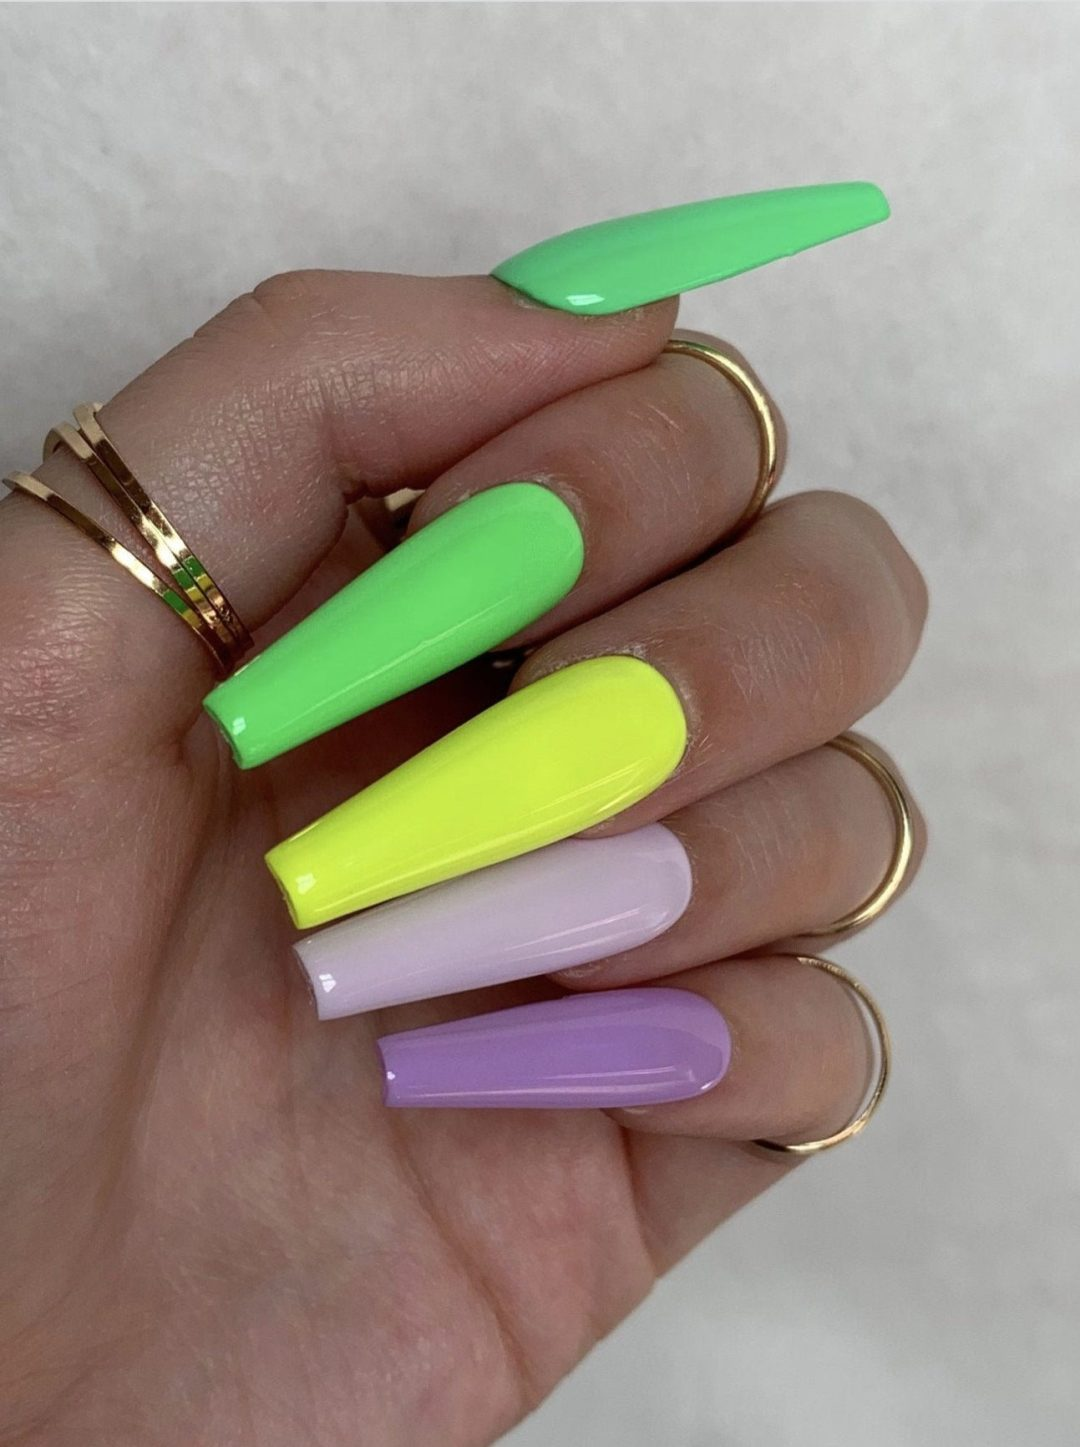 Neon and pastel gradient nails with green, yellow and purple tones